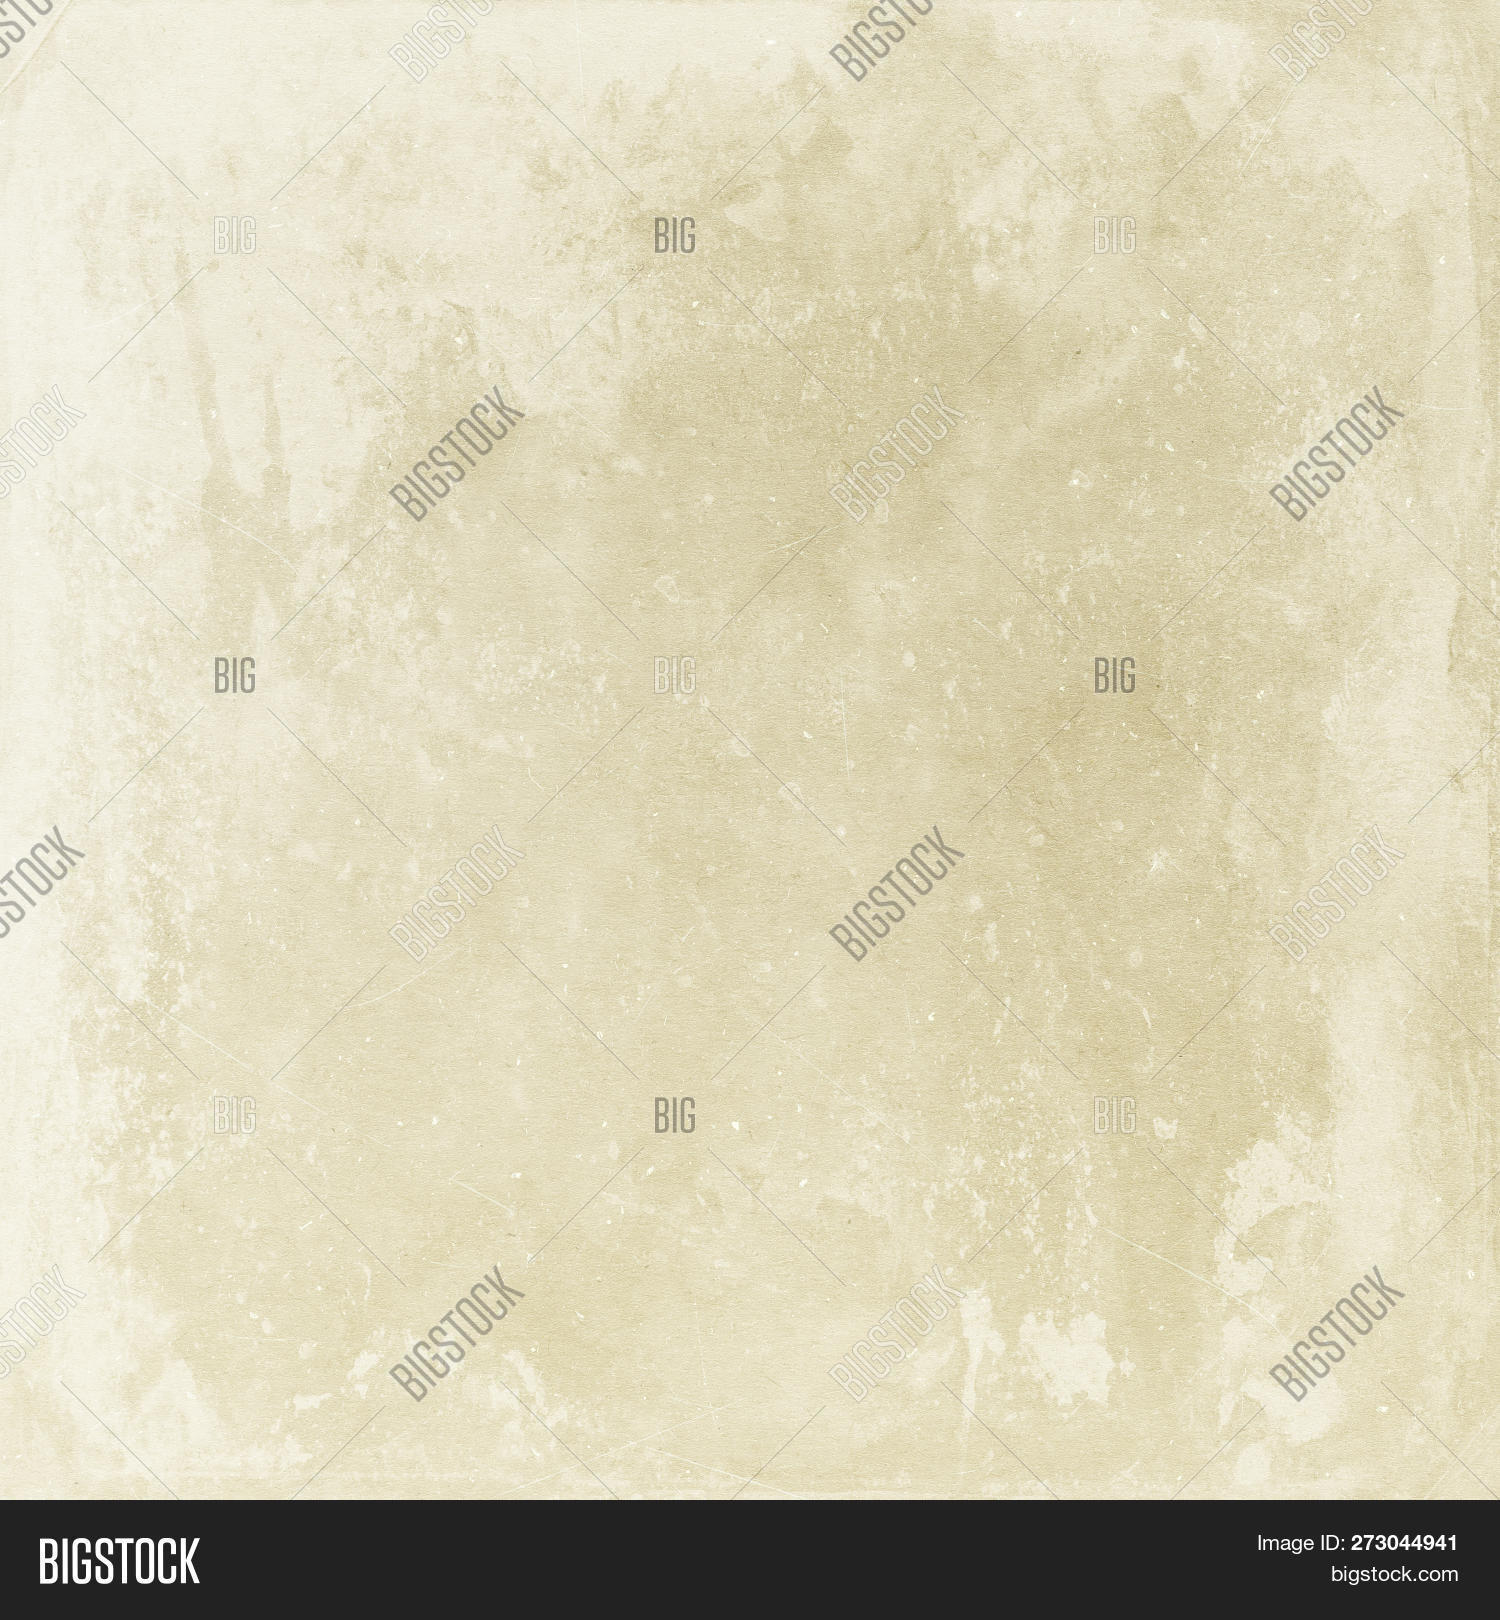 Abstract,Art,Wallpaper,ancient,antique,background,beige,canvas,design,dirt,grunge,illustration,old,paint,paper,parchment,pattern,poster,retro,rough,stained,stains,streaks,texture,textured.,vintage,wall